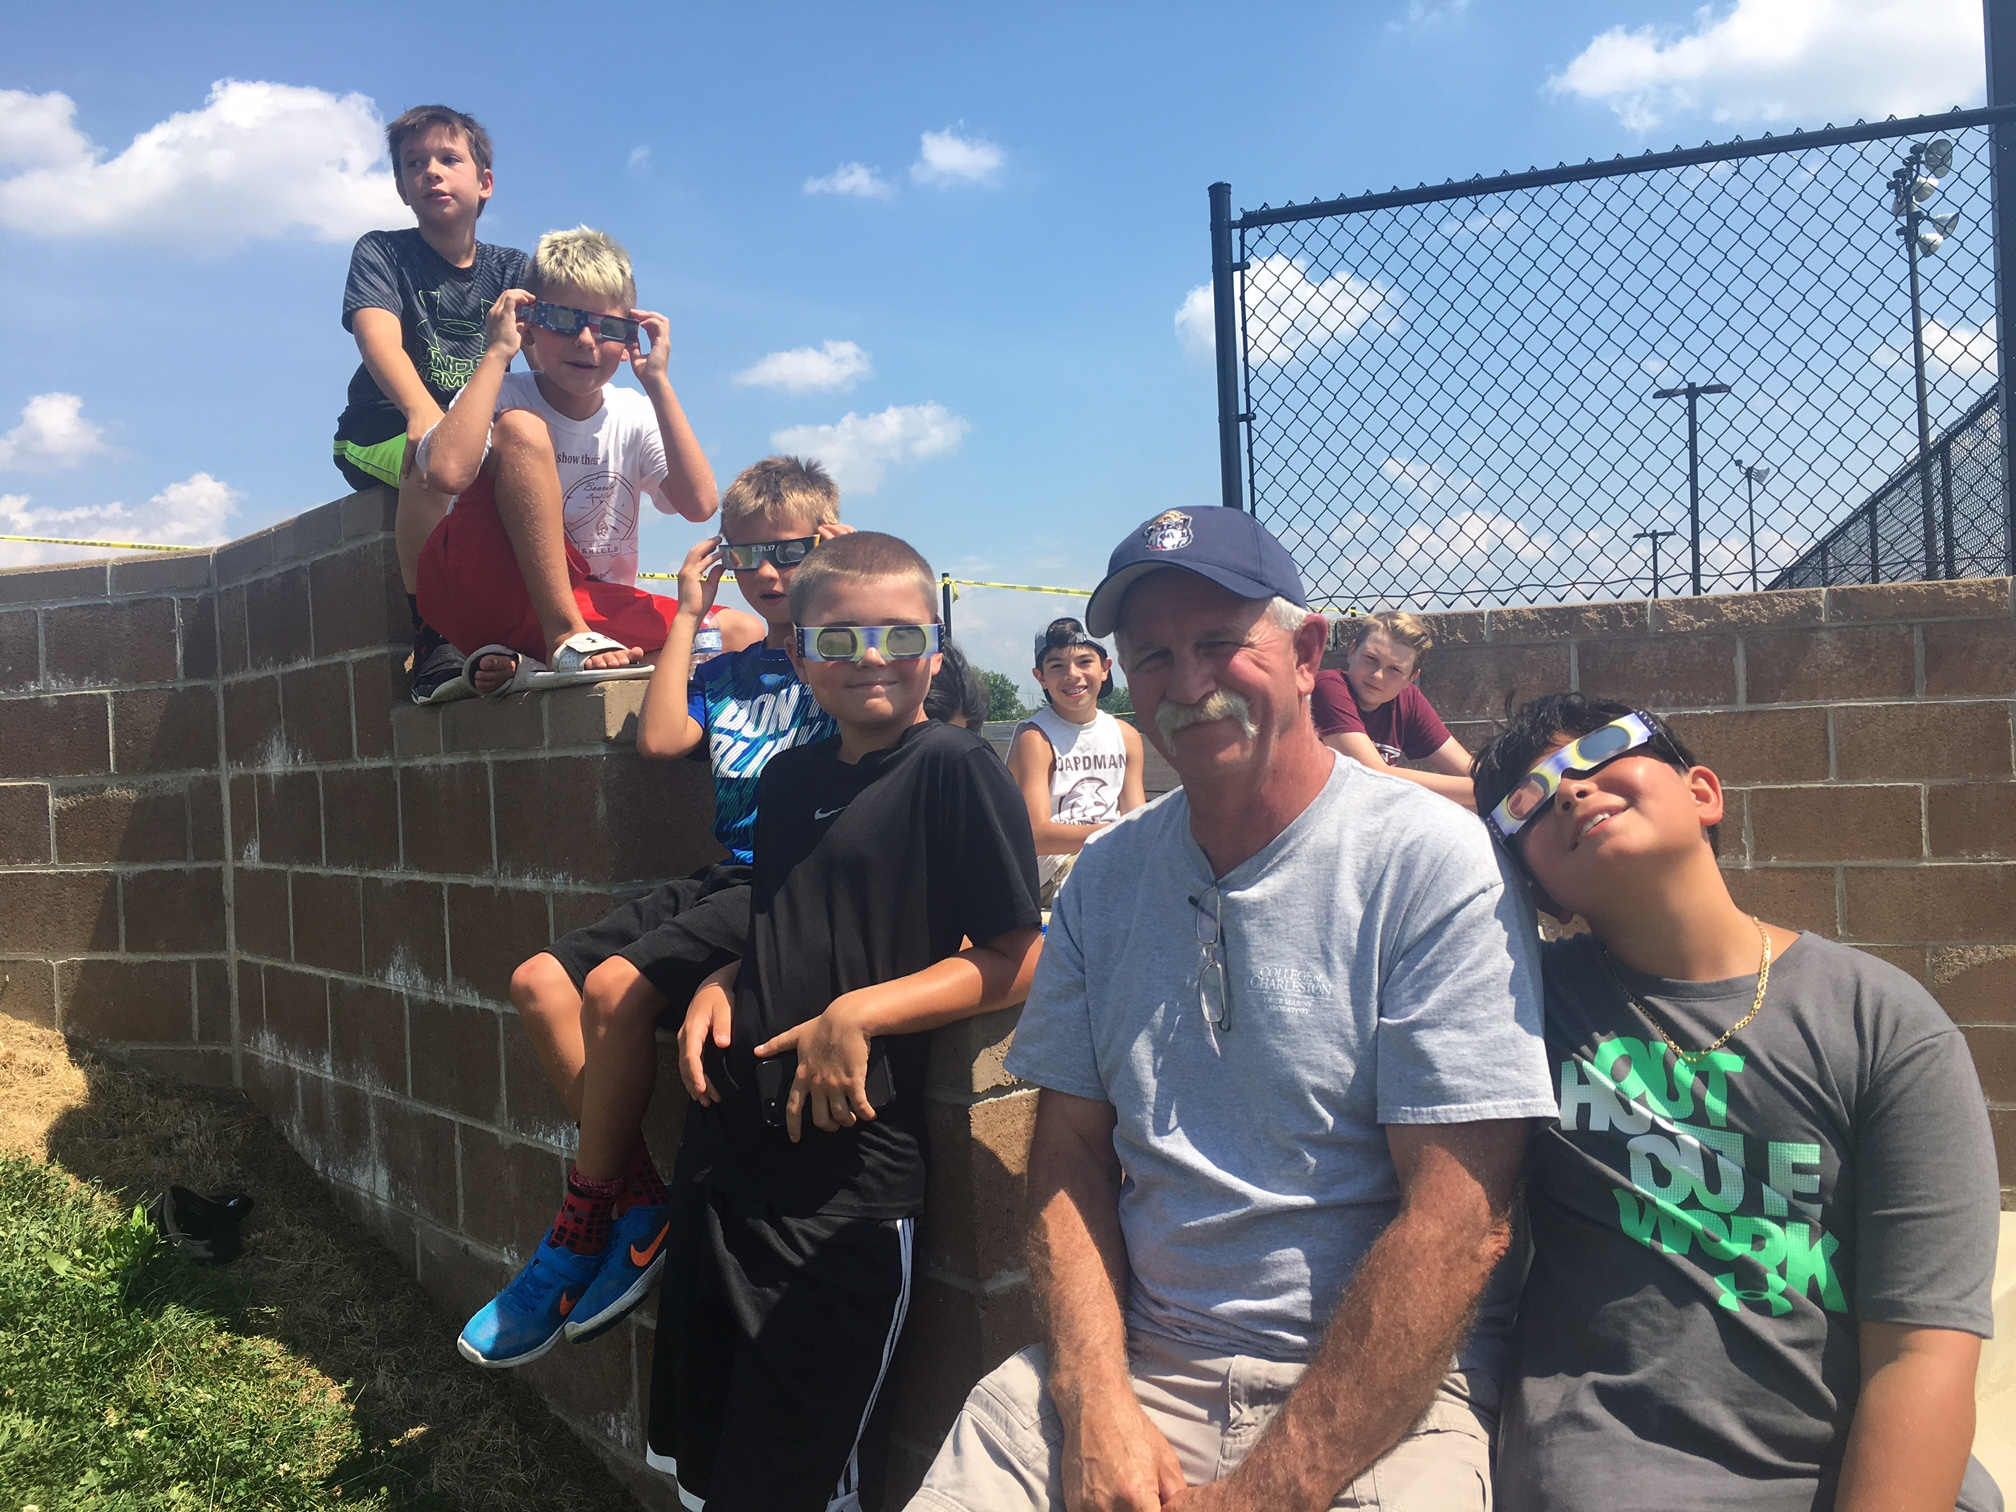 Eclipse Event at Spartan Stadium